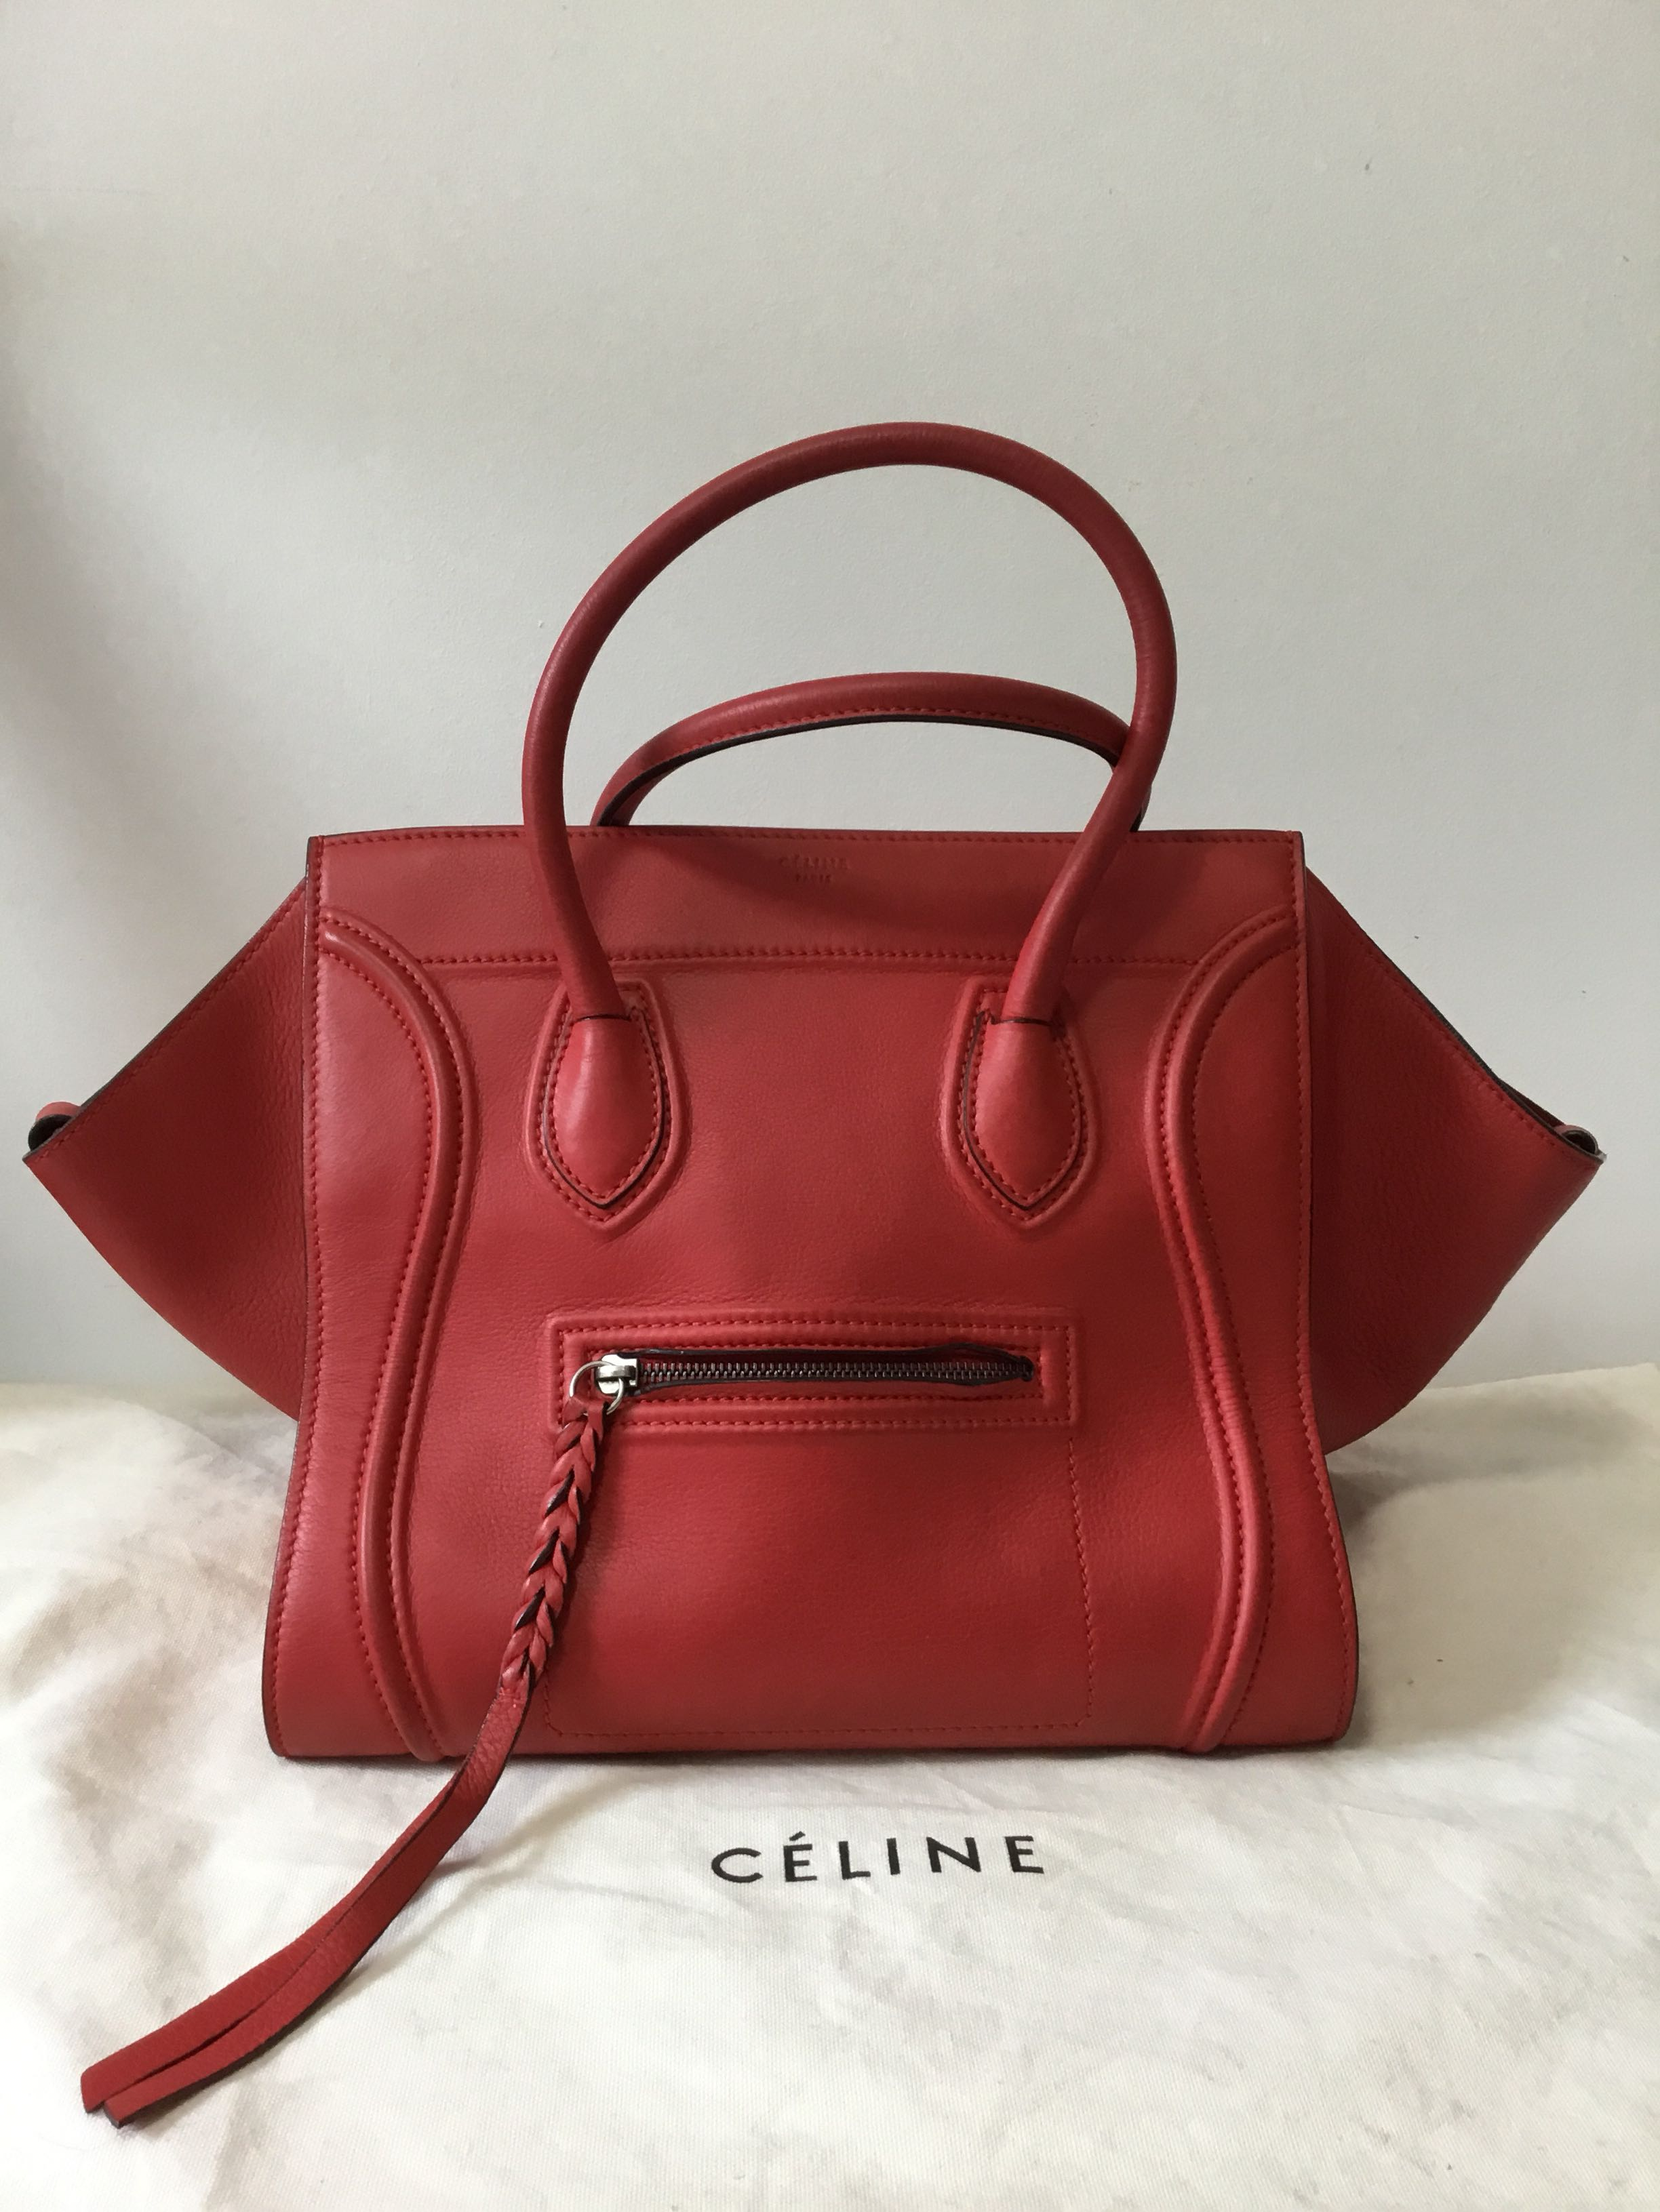 c7b2d1d5db 💯% authentic Celine Phantom calfskin medium handbag